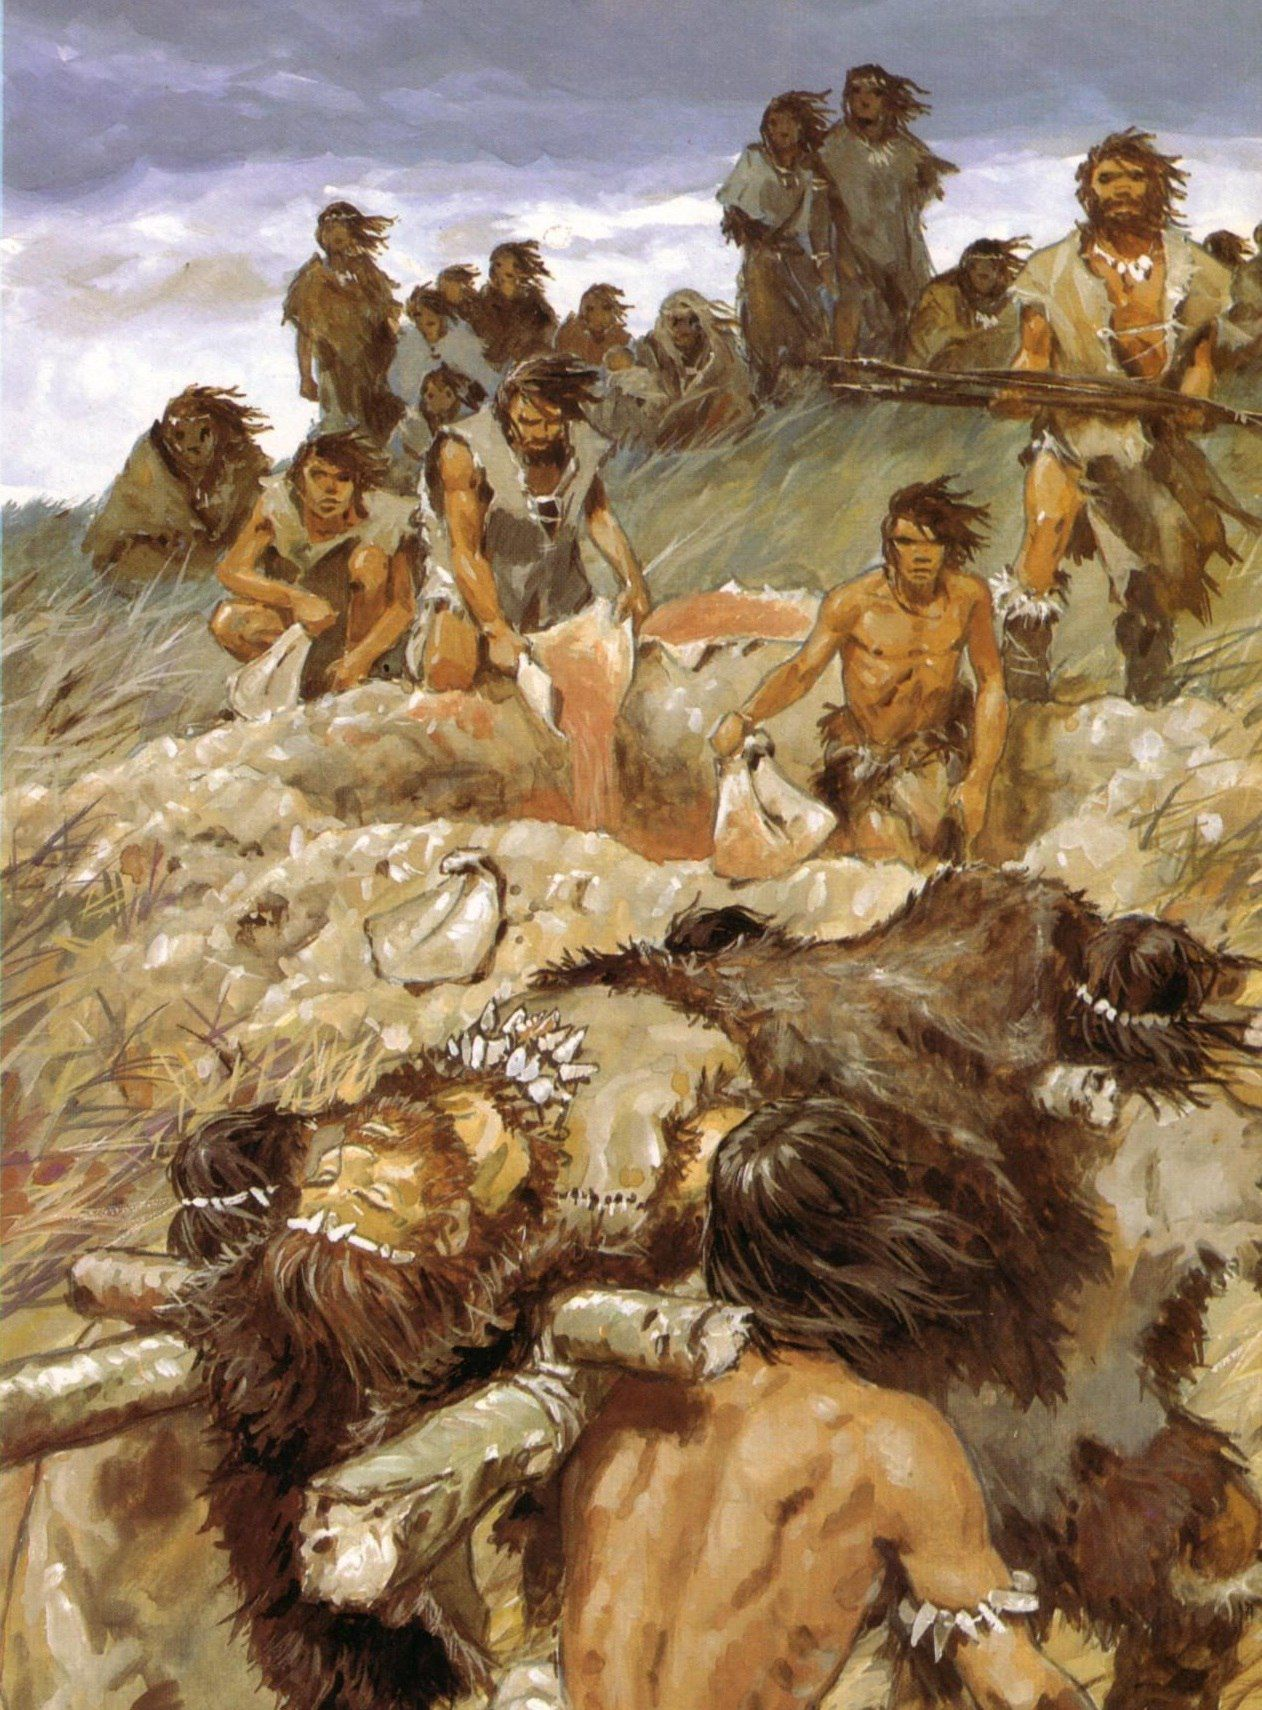 Paleolithic burial by Pierre Joubert | Stone Age ...  Paleolithic bur...